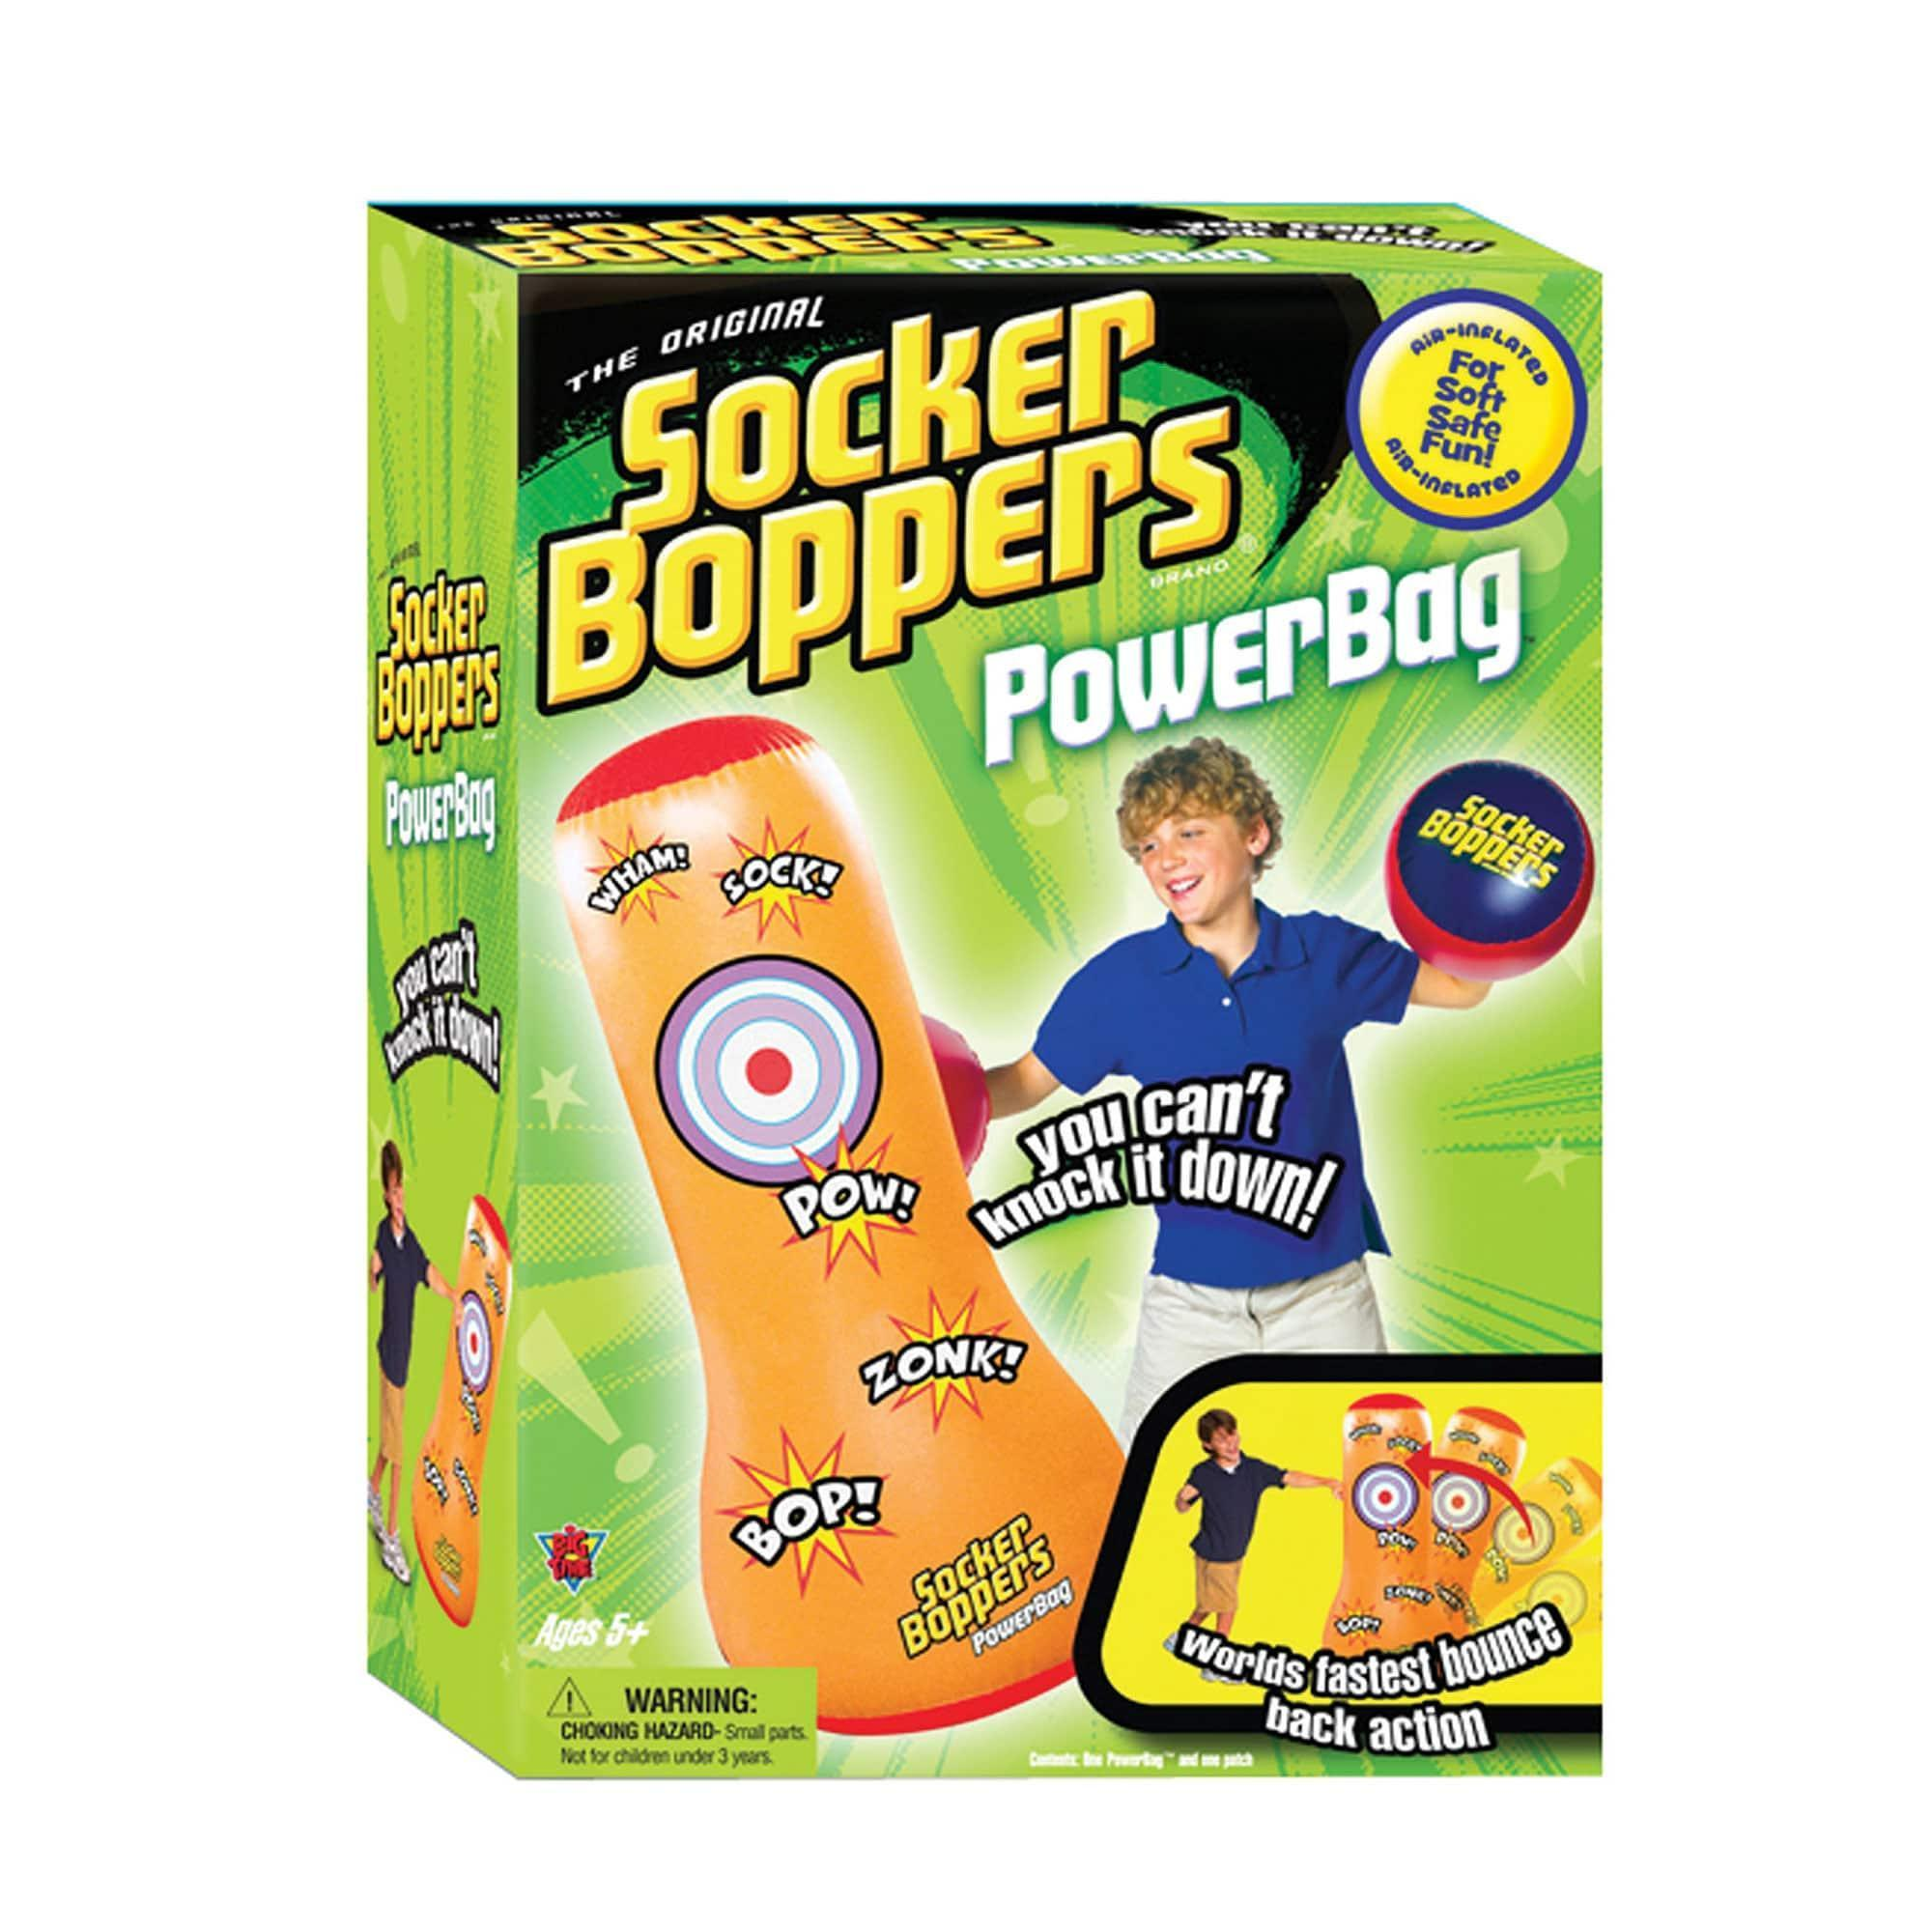 Socker Boppers Inflatable Power Bag